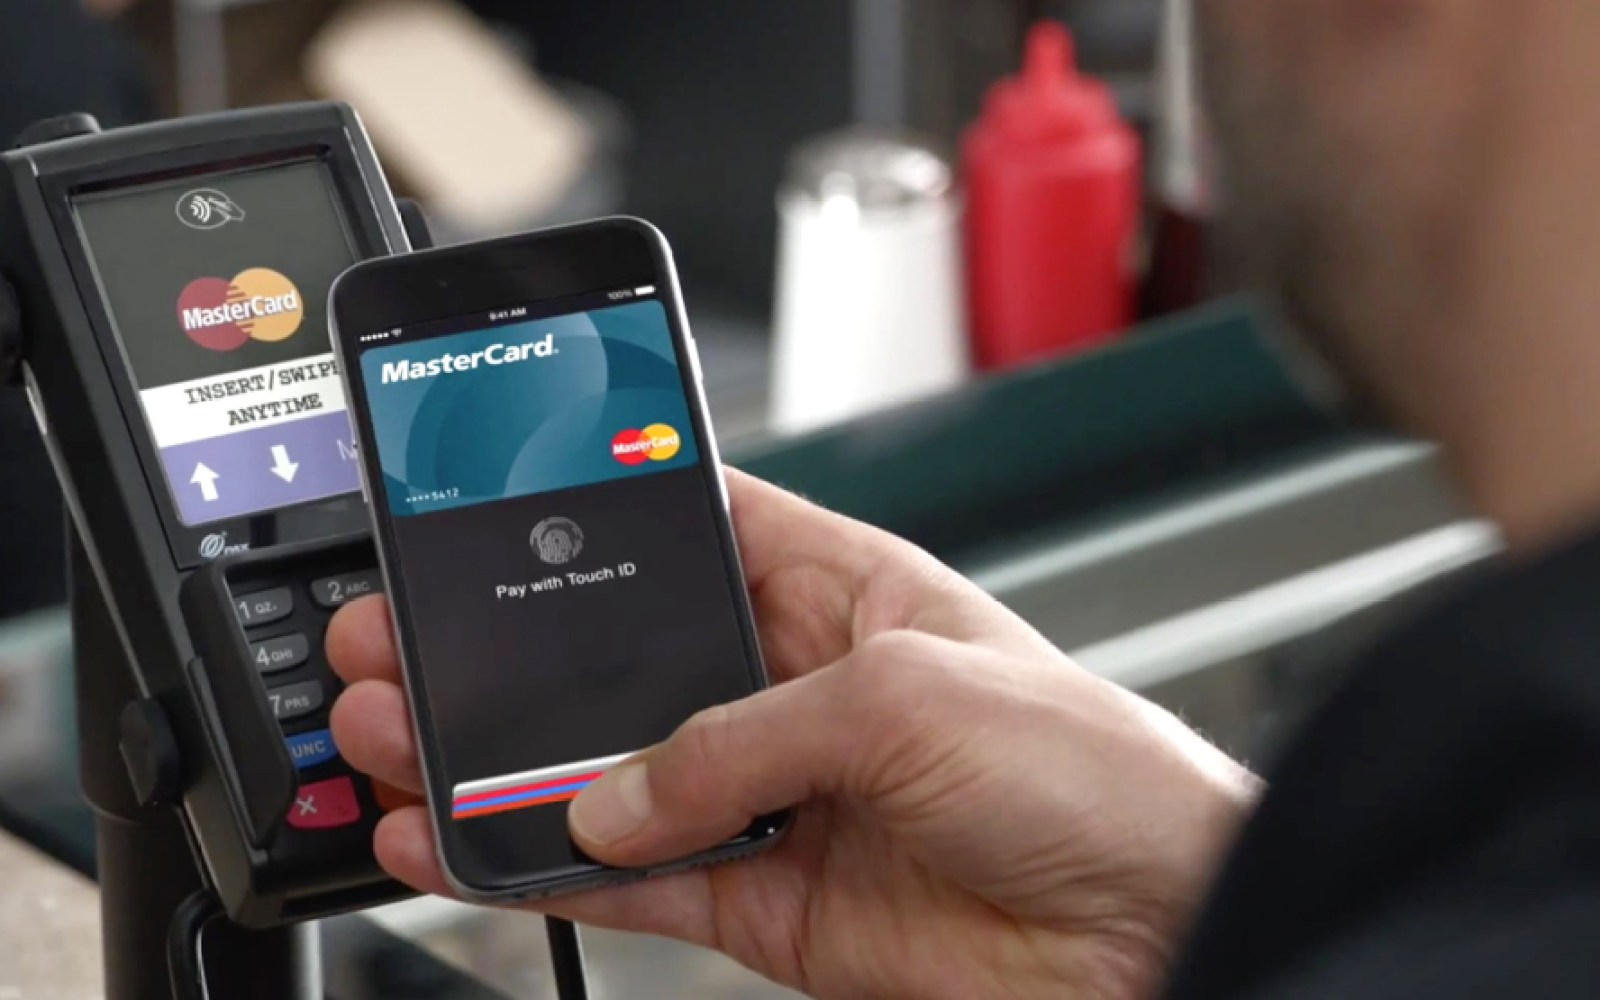 Apple in talks to expand NFC in iPhone 6 beyond Apple Pay, replace building keycards and transit tickets